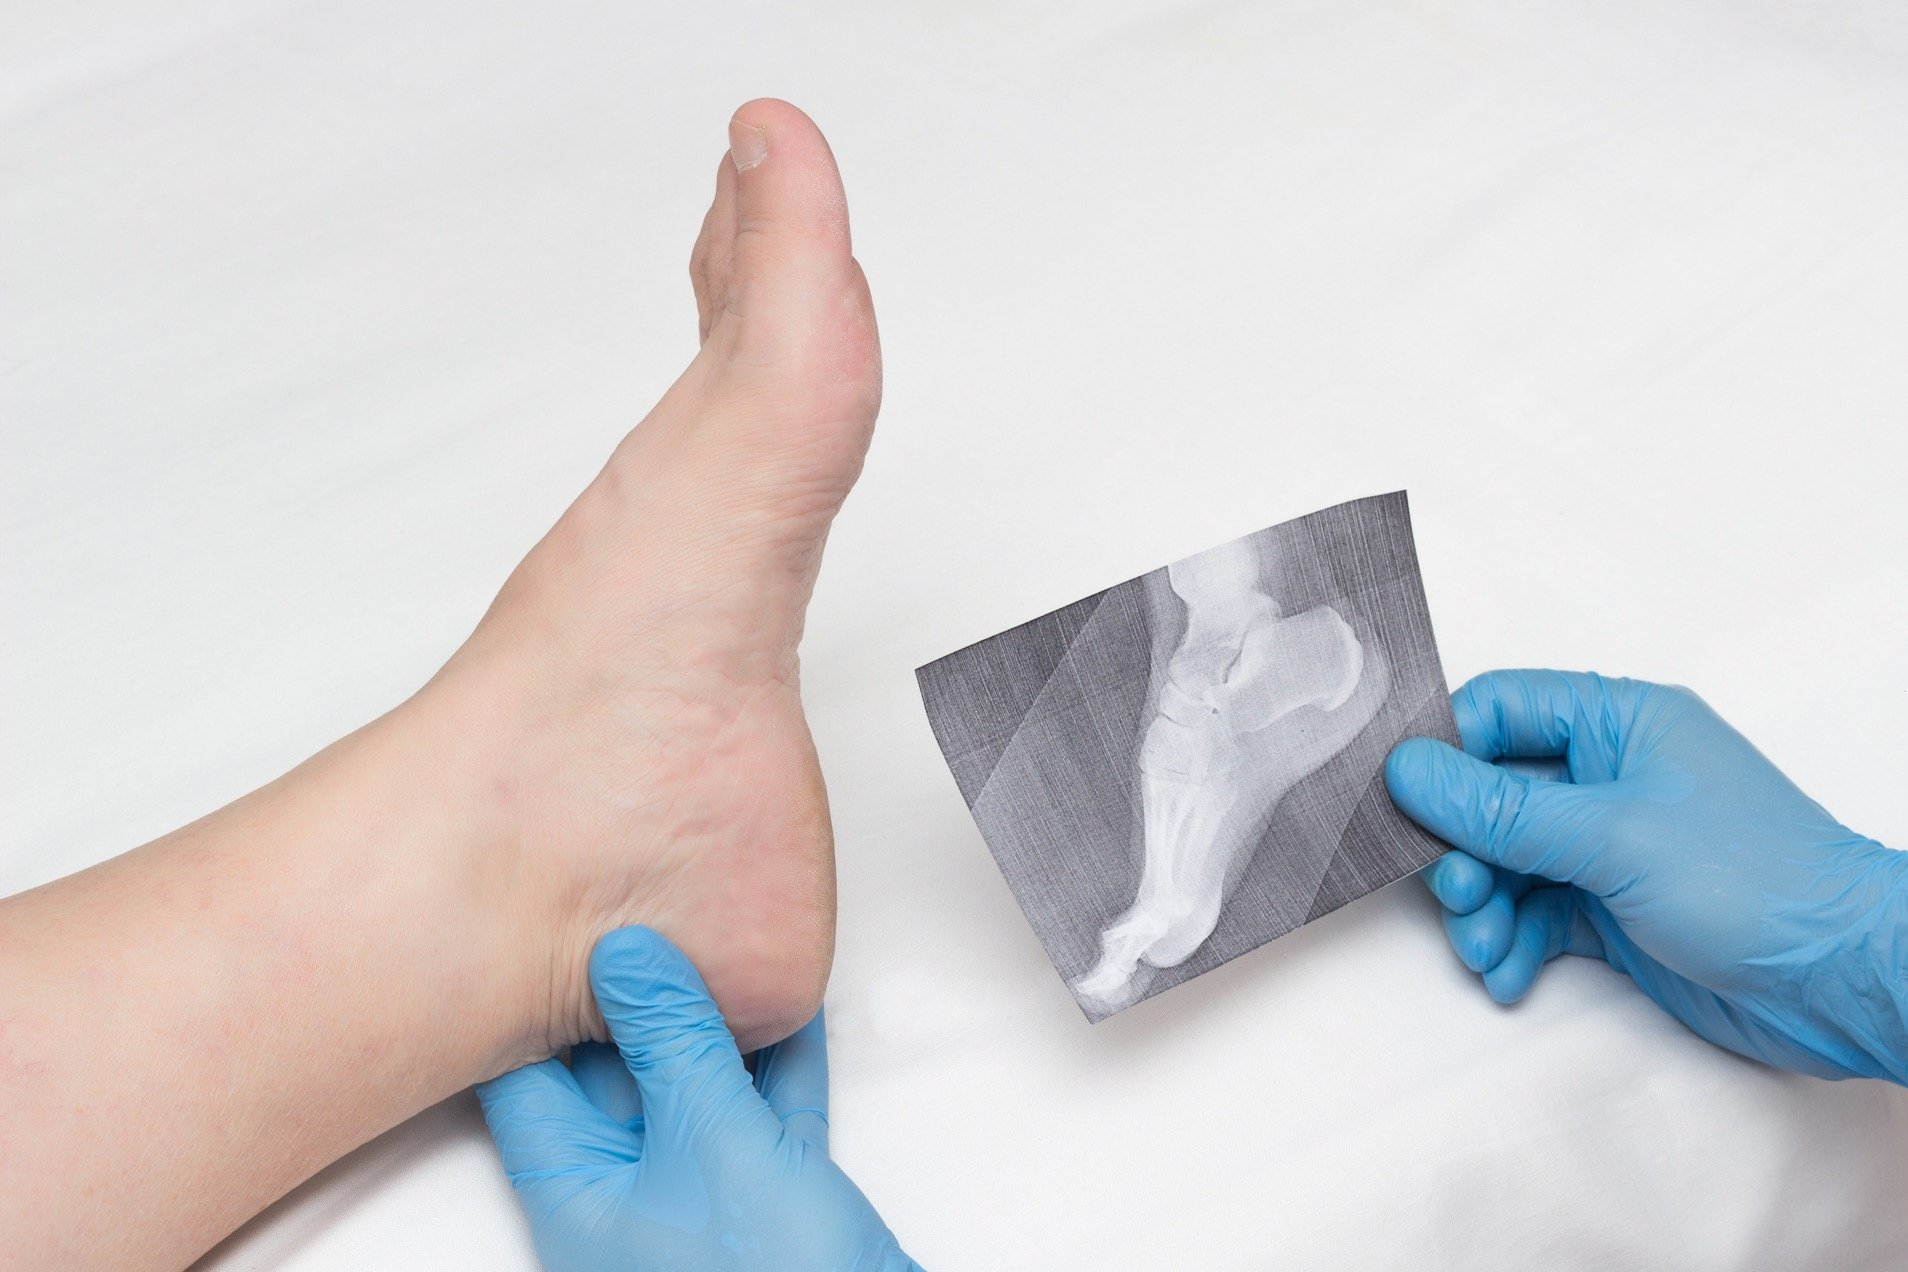 Doctor comparing patient's foot with an x-ray of bone spurs